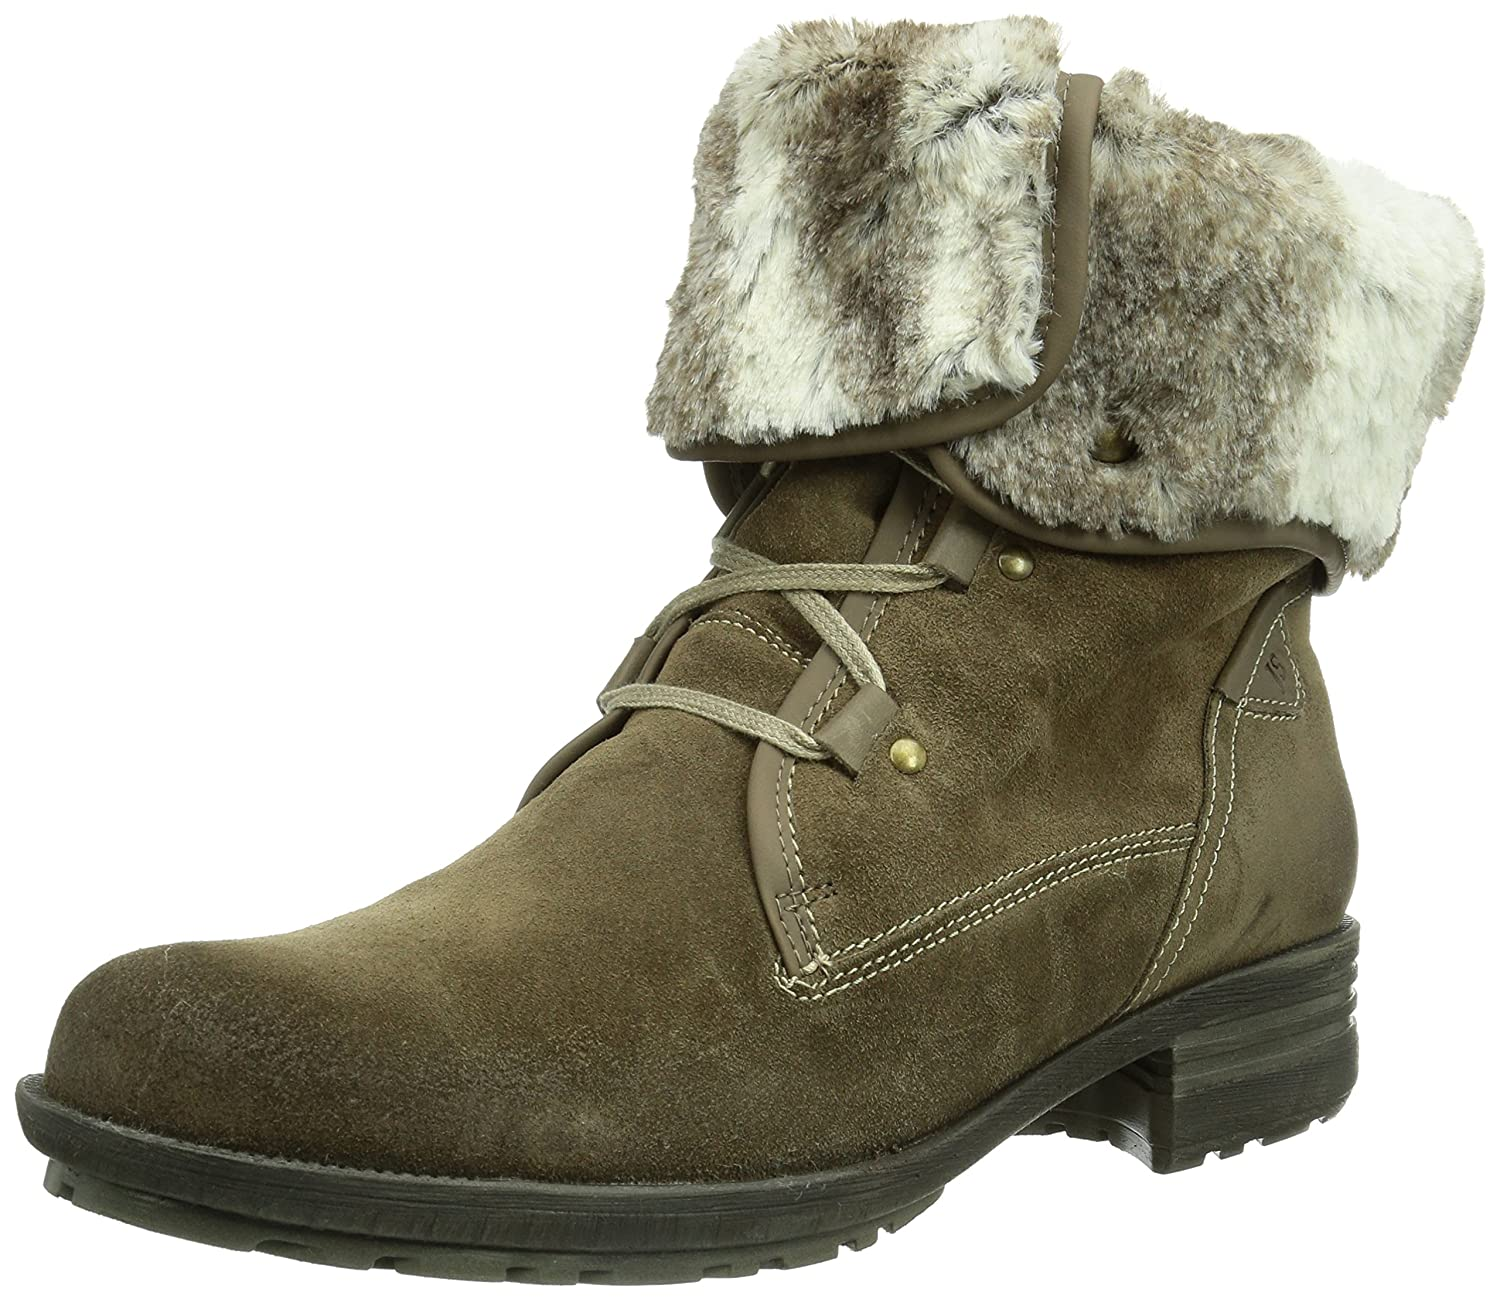 e4594279130a3 Josef Seibel Women s Sally Fur Lined Ankle Boots